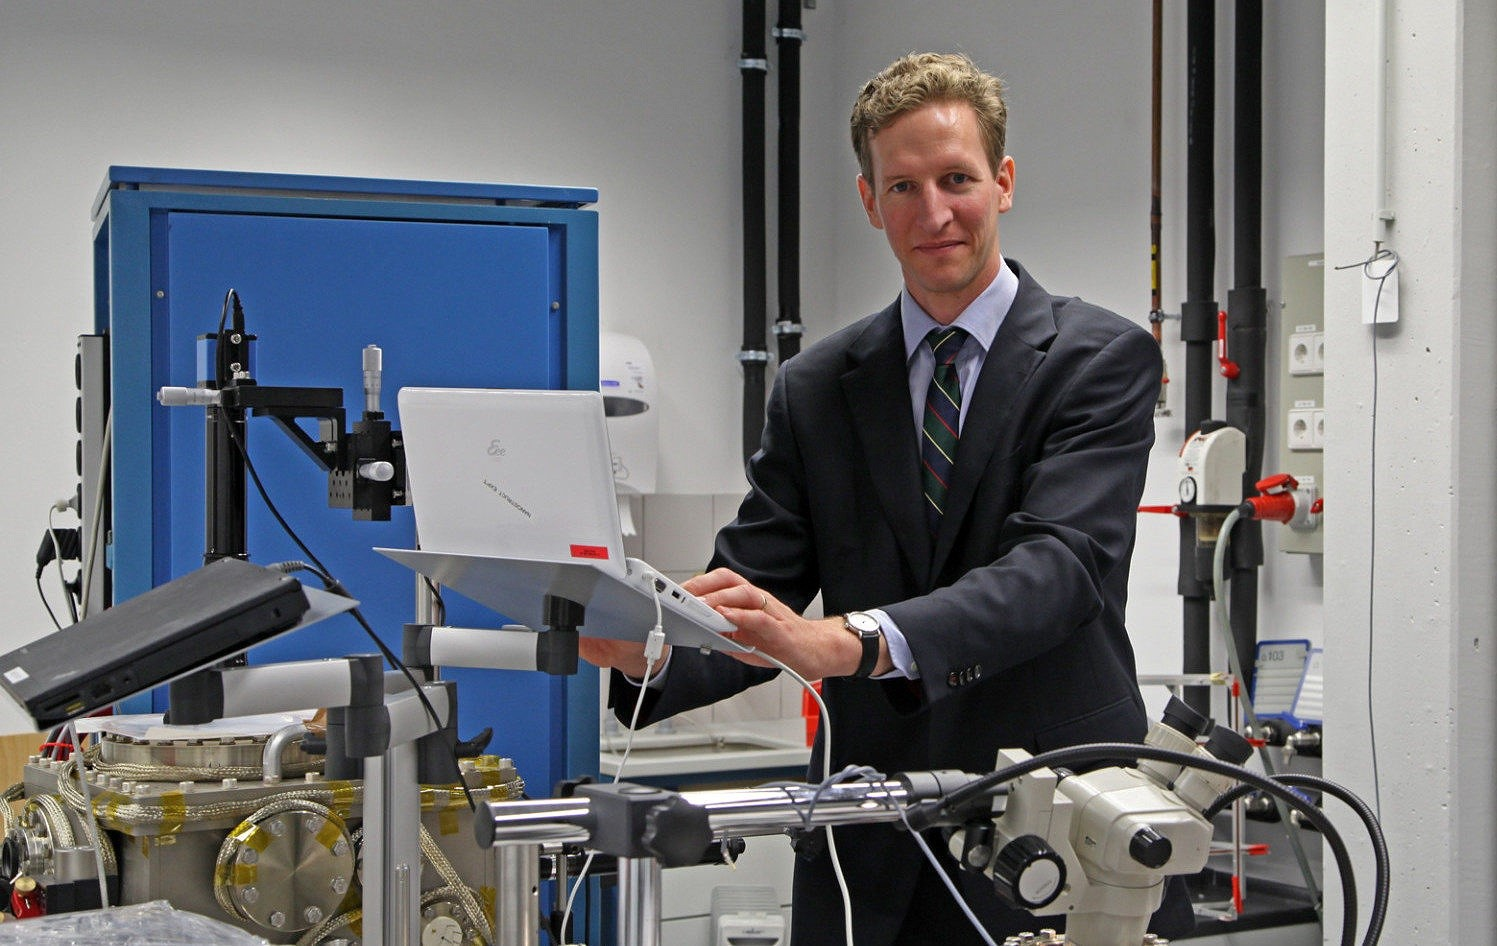 Prof. Dr. Peter Hommelhoff, Chair of Laser Physics at FAU